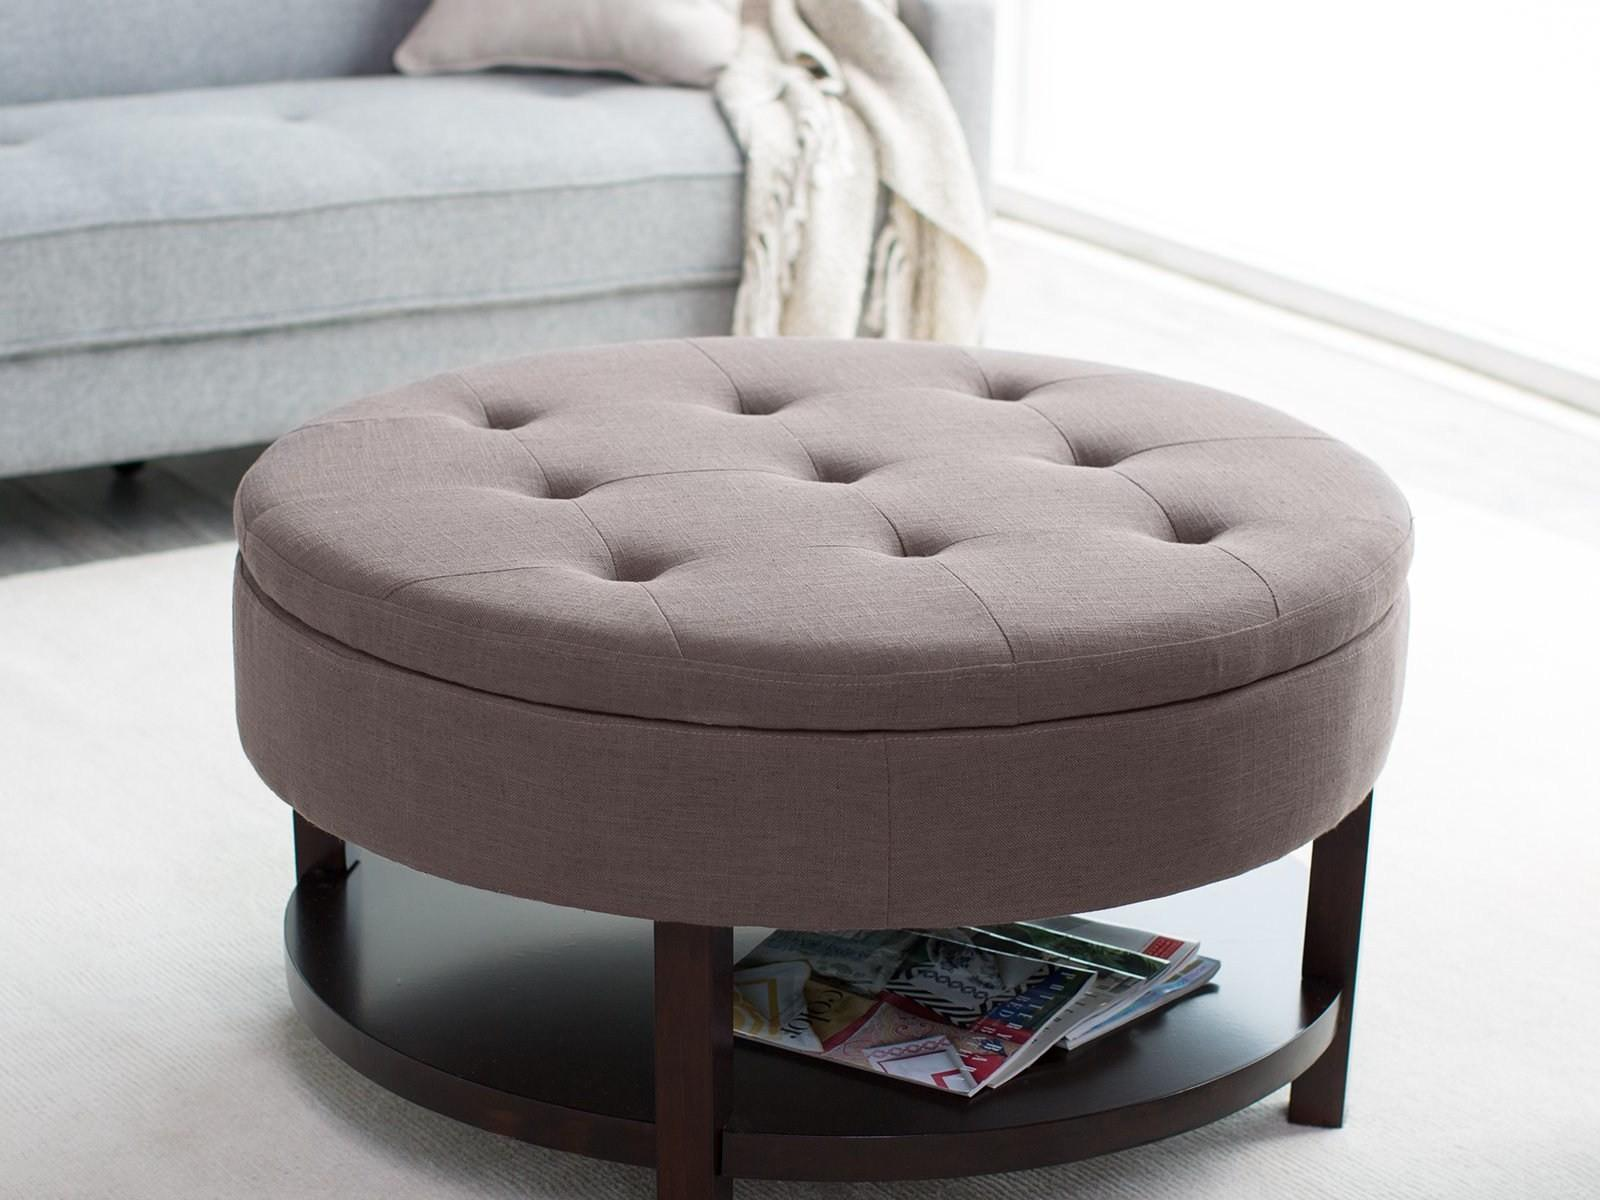 Cheap Simple Round Upholstered Ottoman Coffee Table Diy